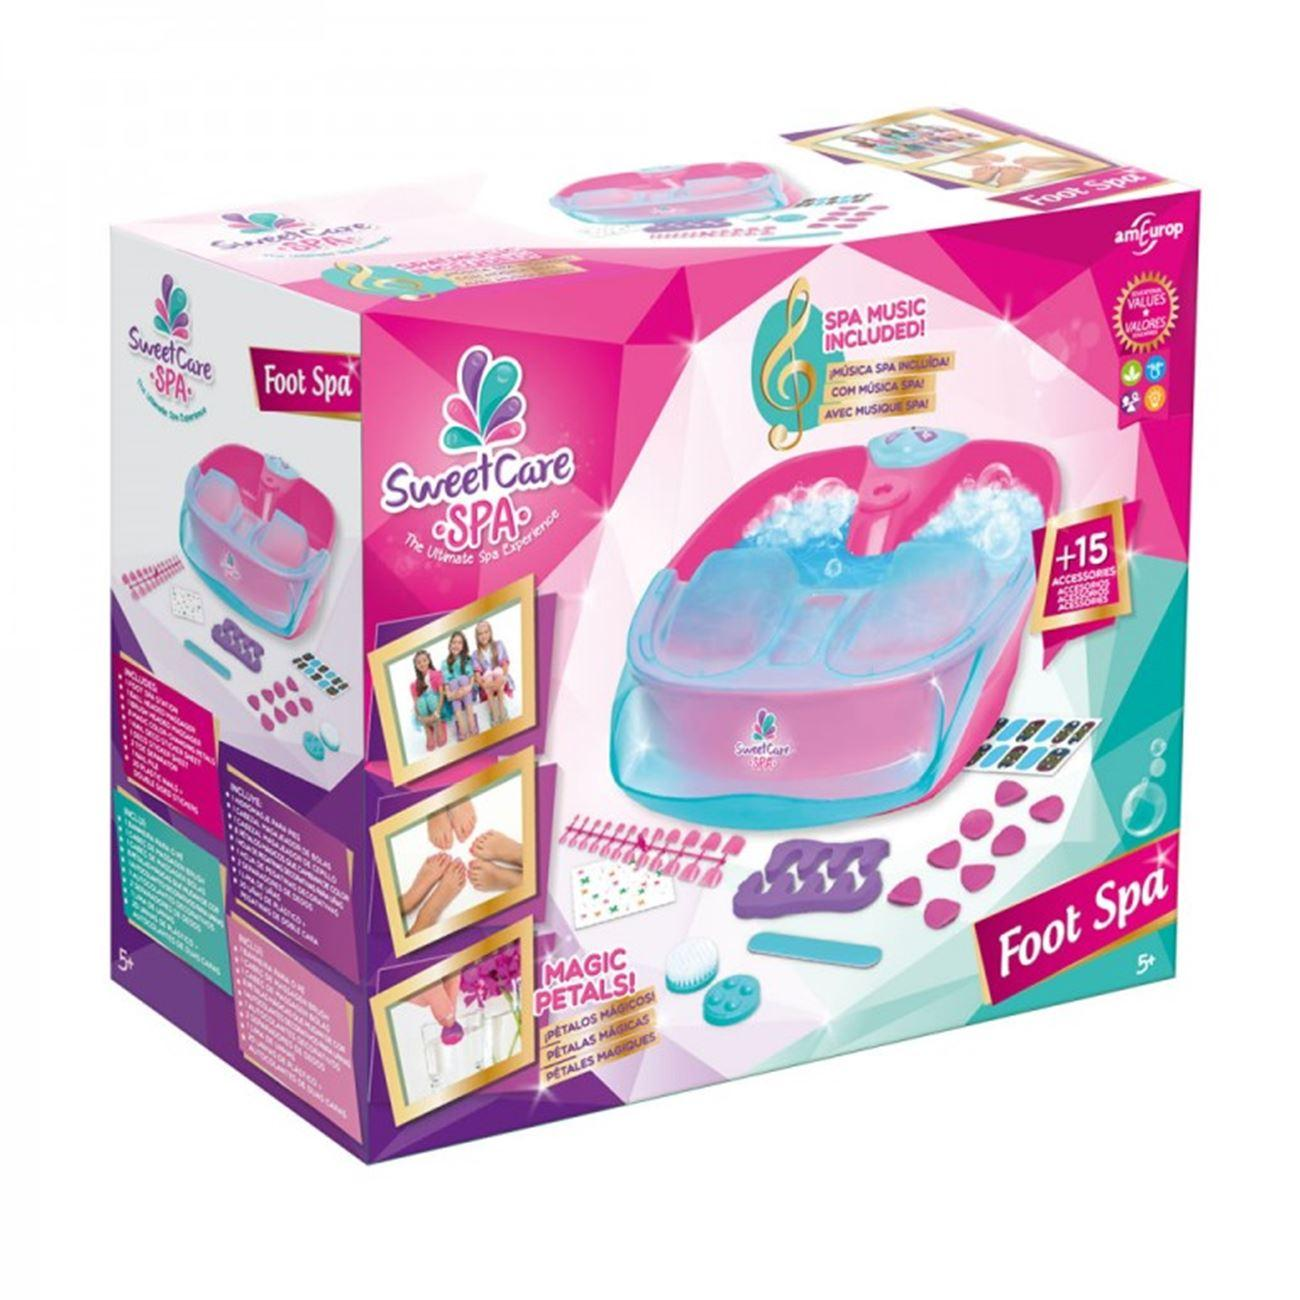 Sweet Care Foot Spa (90817)